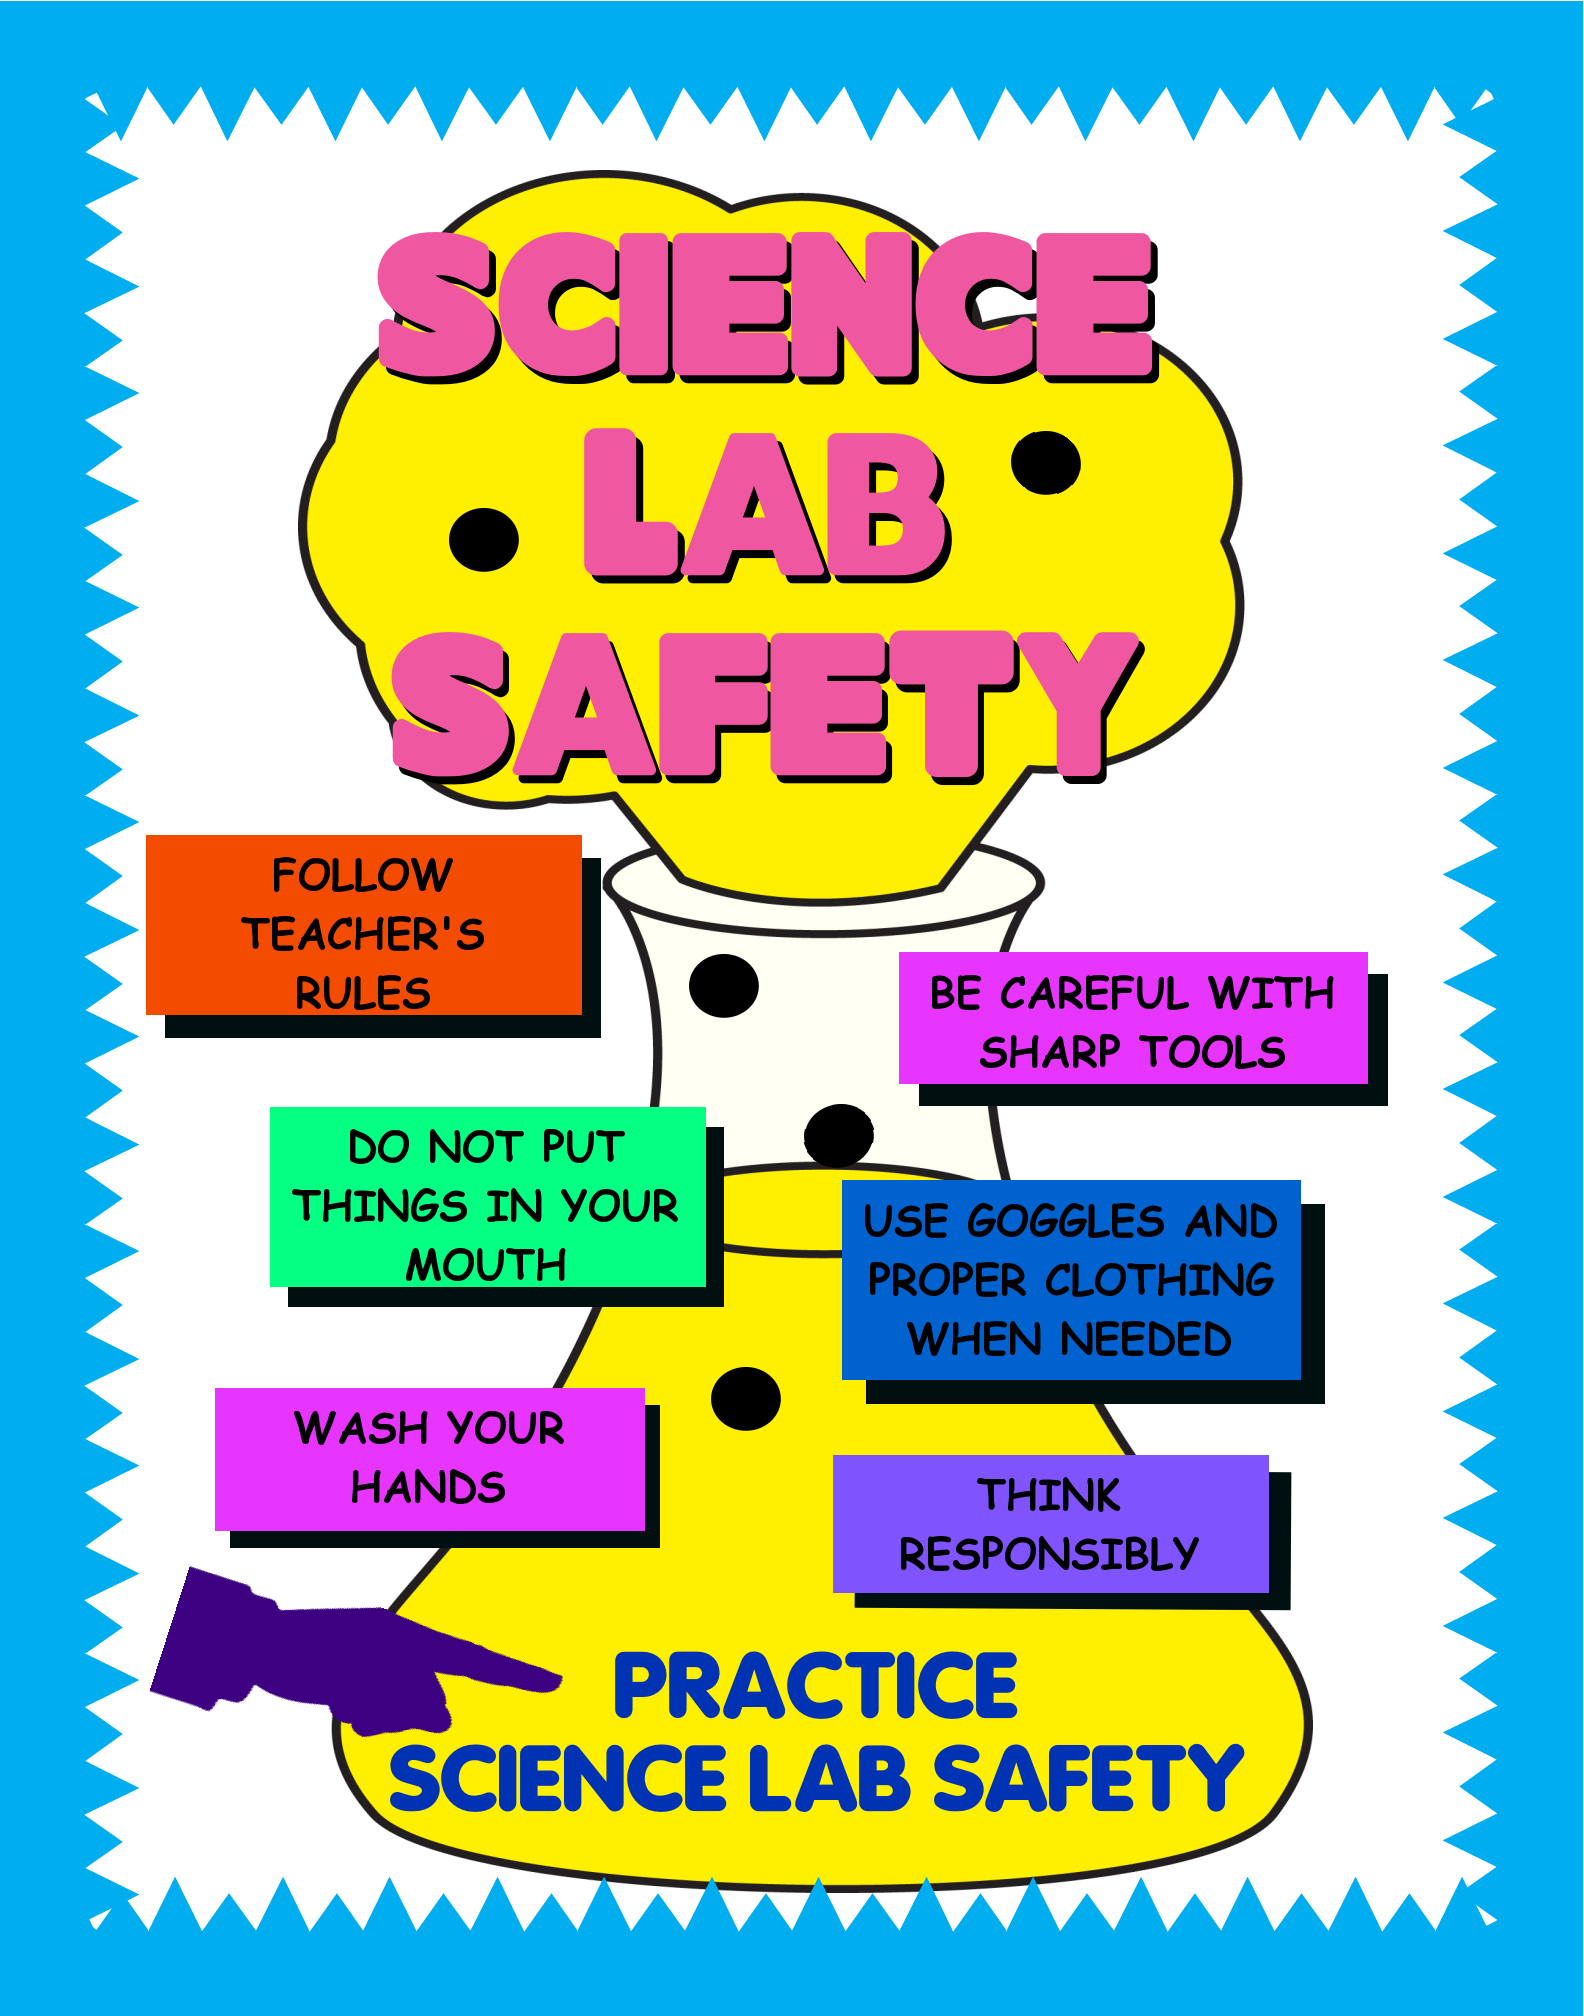 Science Lab Safety Is Very Important